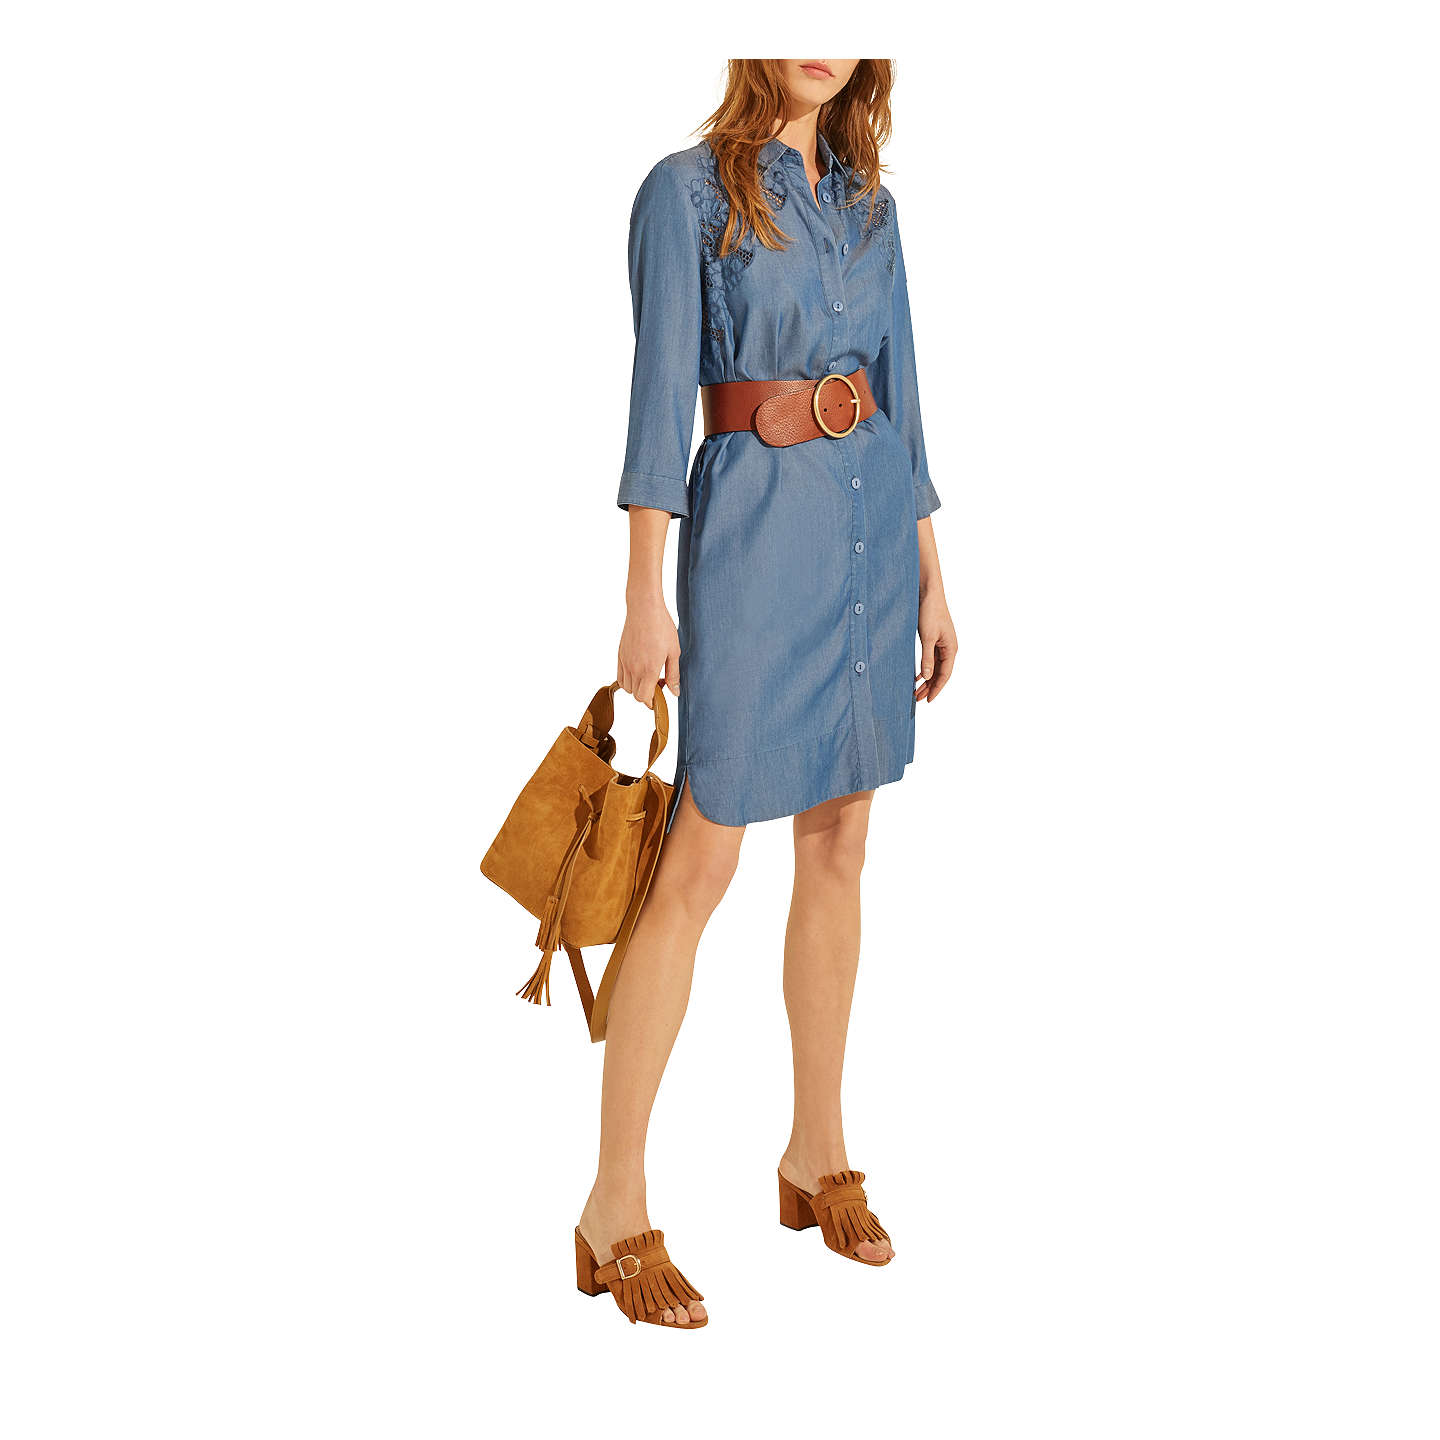 BuyGerard Darel Dissia Dress, Blue, 8 Online at johnlewis.com